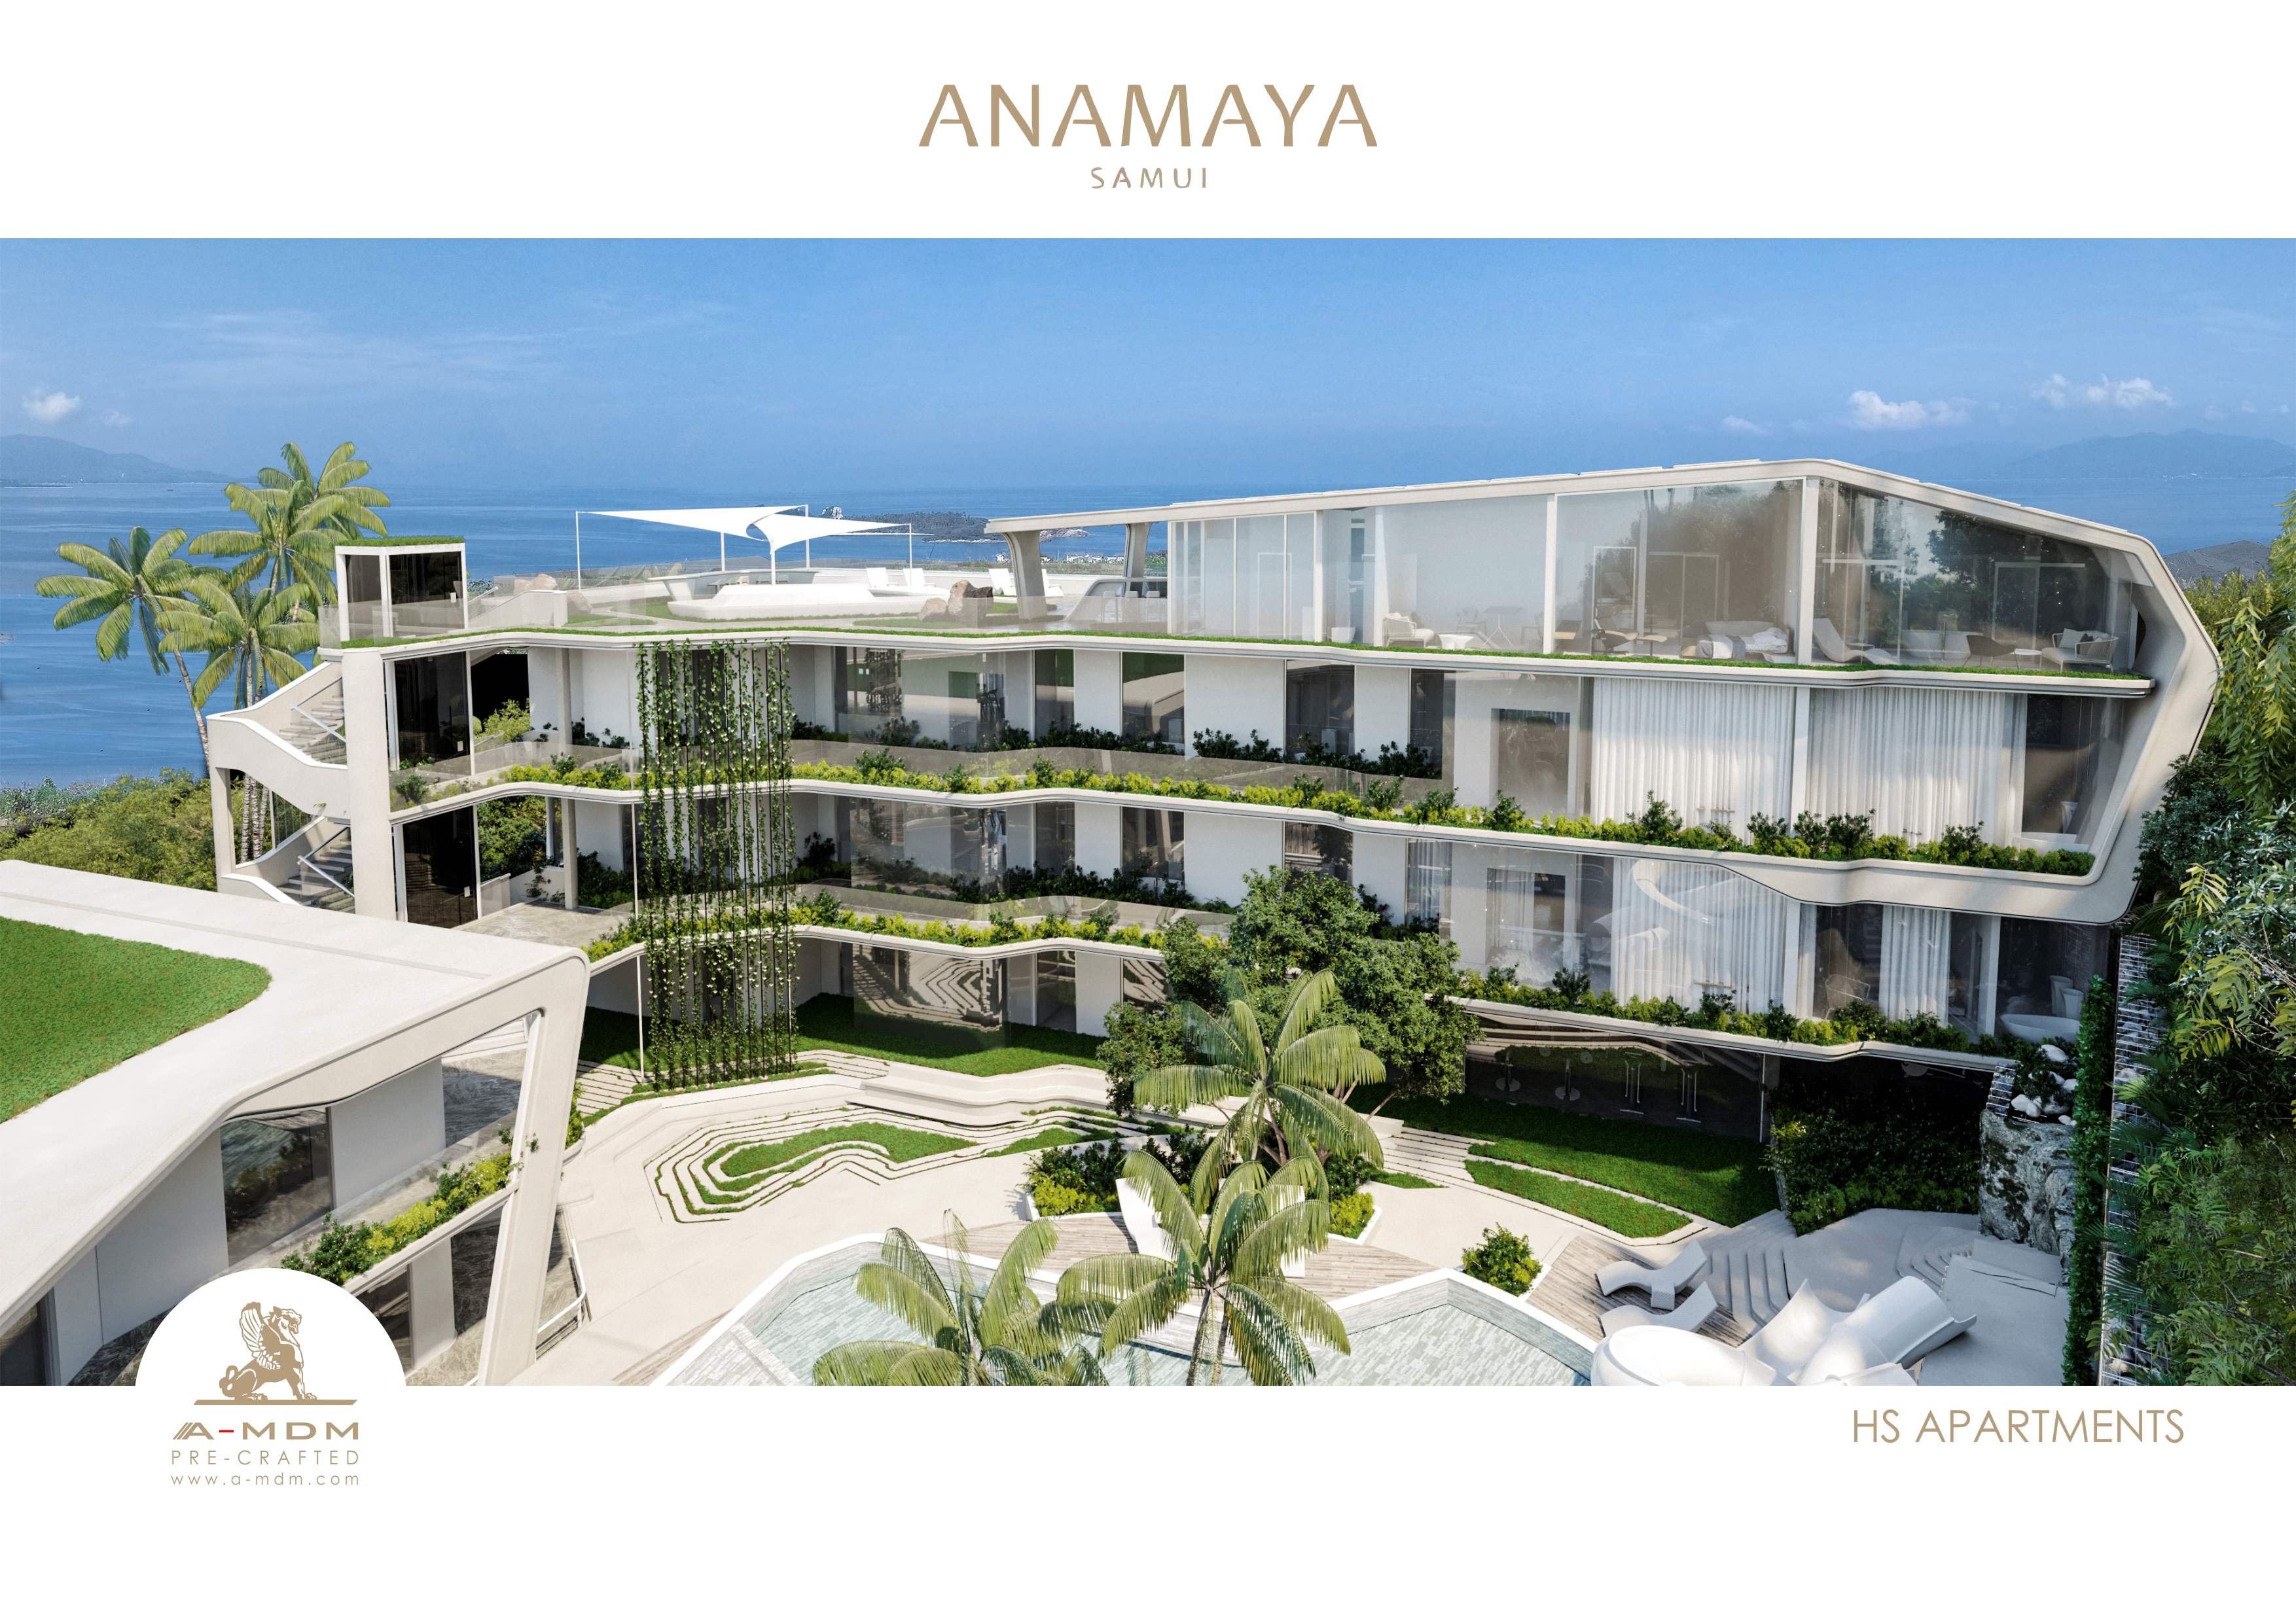 ANAMAYA G WEST.HS APARTMENTS. VIEW 1